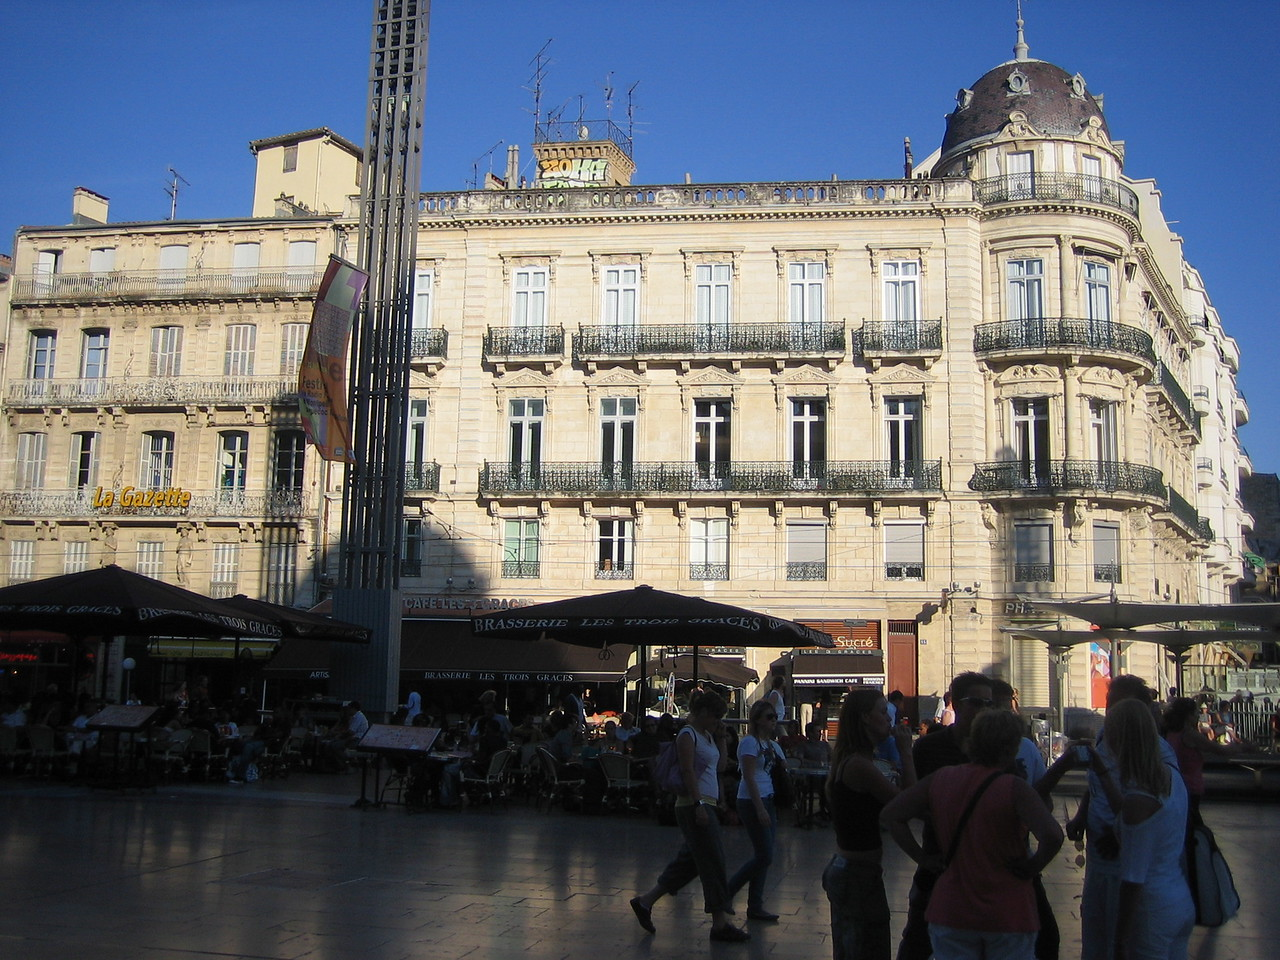 The main square in the Comedy is lined with restaurants and cafes with patios. While you eat on the patios, street entertainers perform for you.